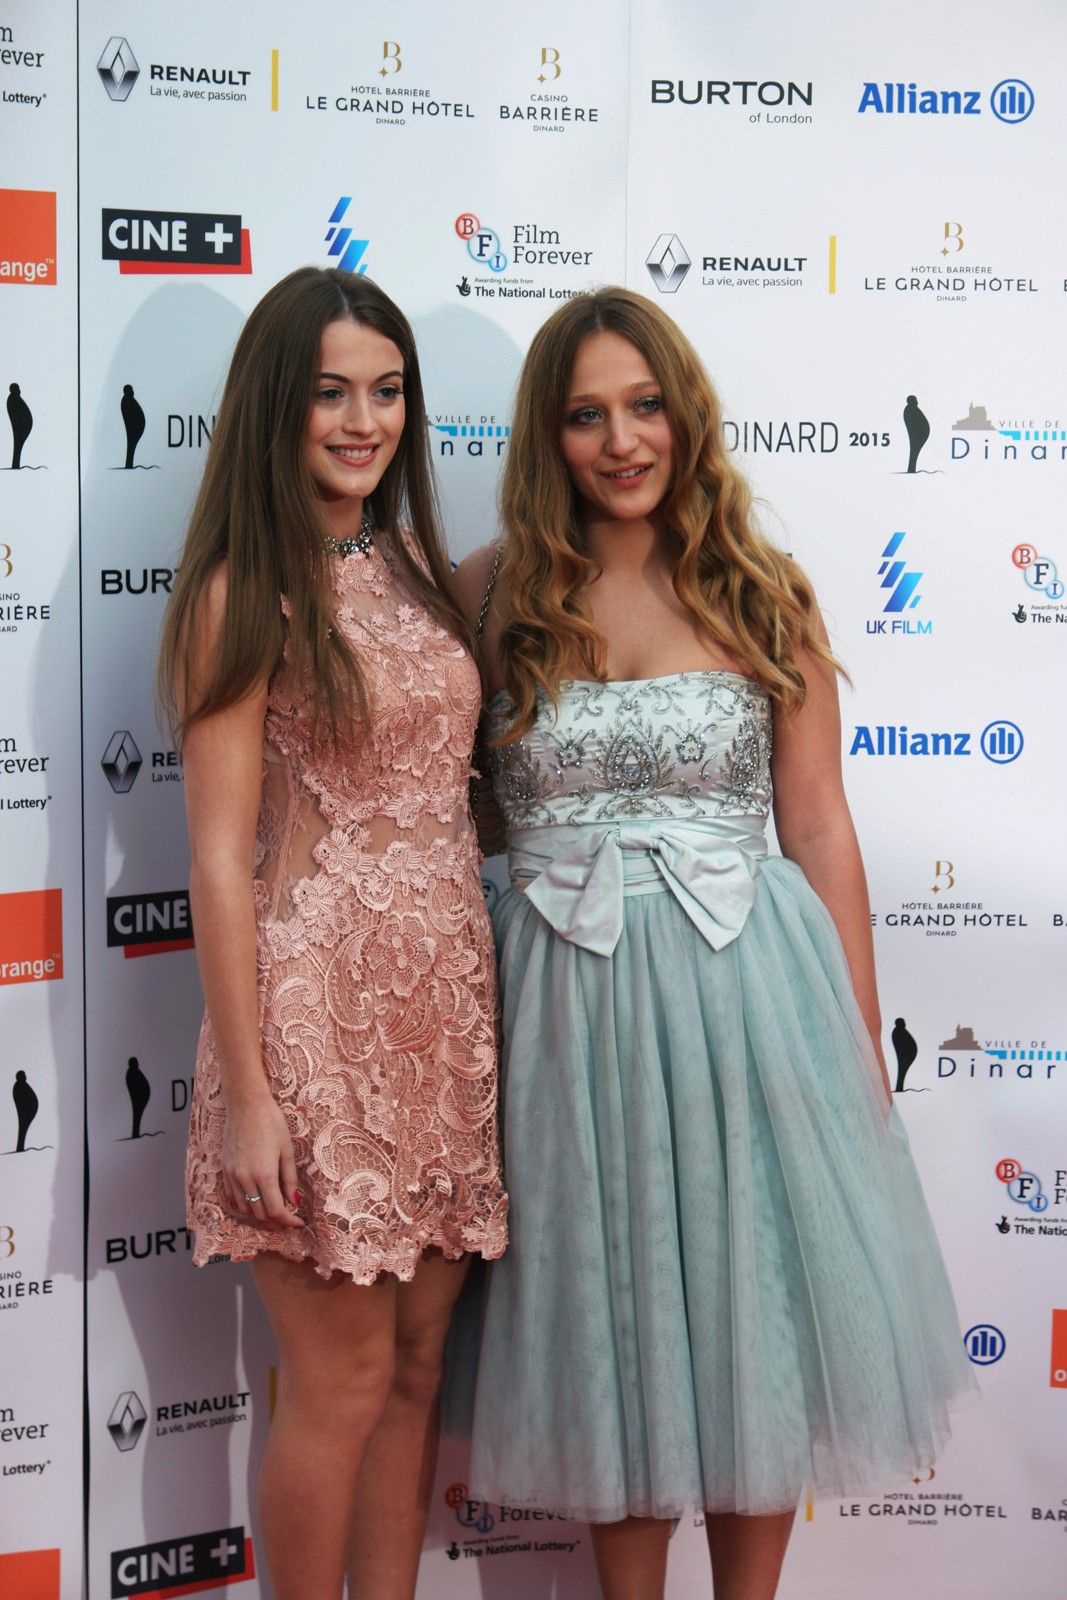 Lauren McQueen Brogan Ellis The Violators movie actress director Helen Walsh red carpet dinard british film festival oprining 2015 france competition photo by usofparis